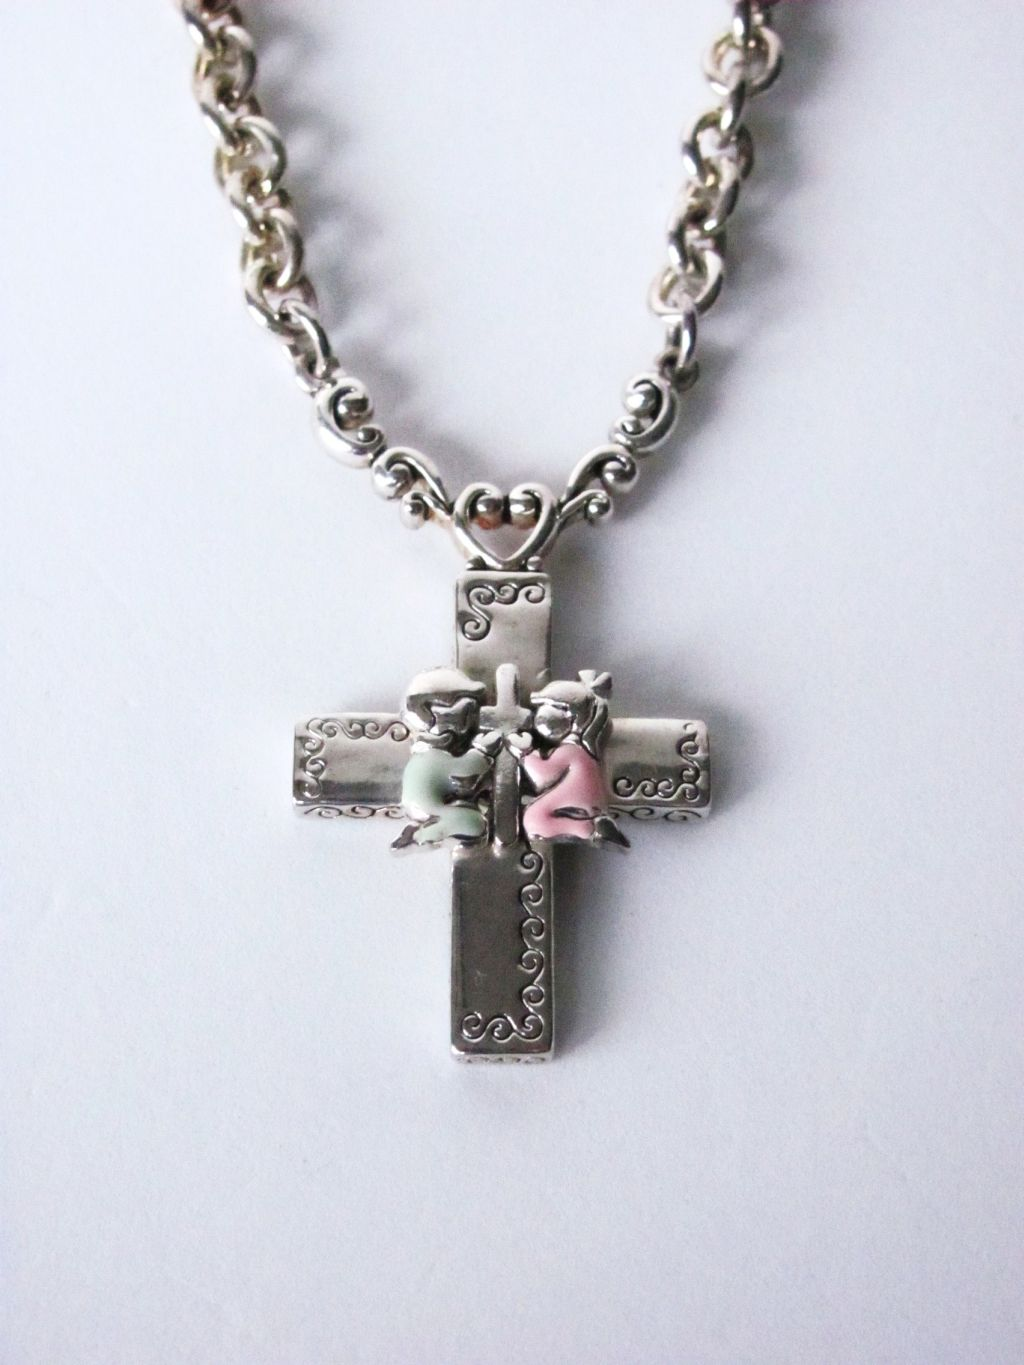 Boy & Girl Prayer Vintage Cross Pendant Necklace, Silver Tone